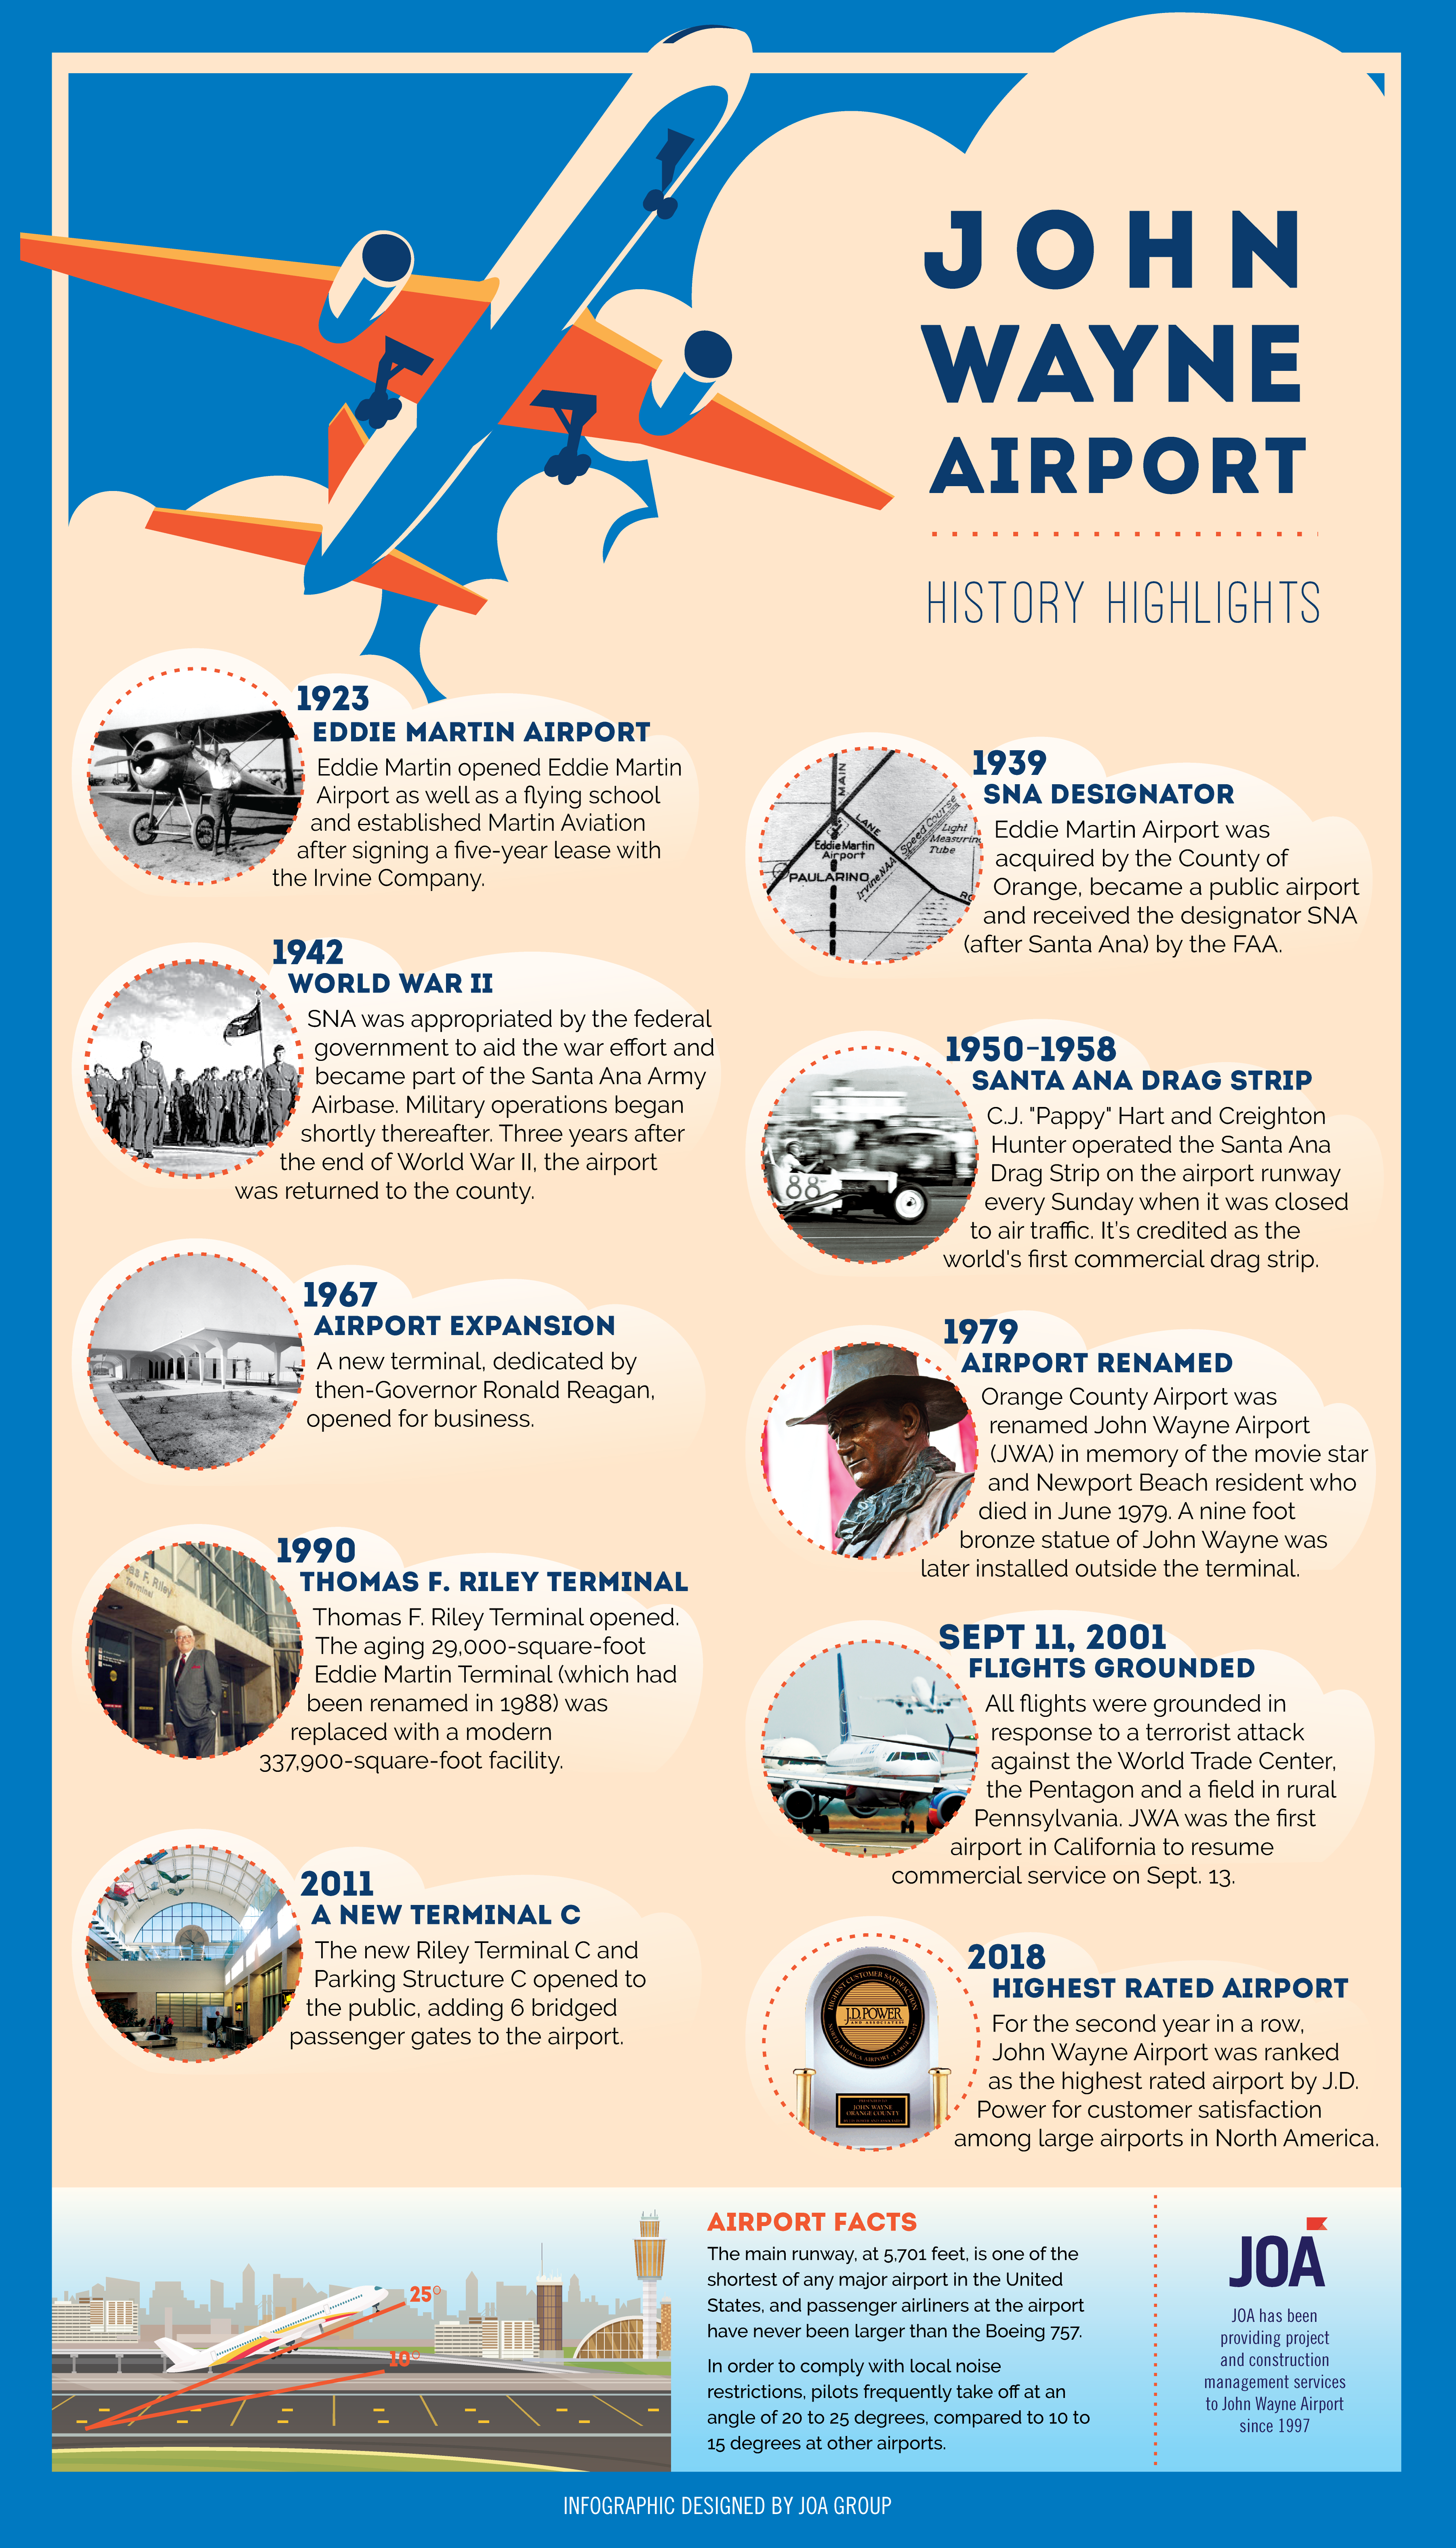 History of John Wayne Airport in an Infographic